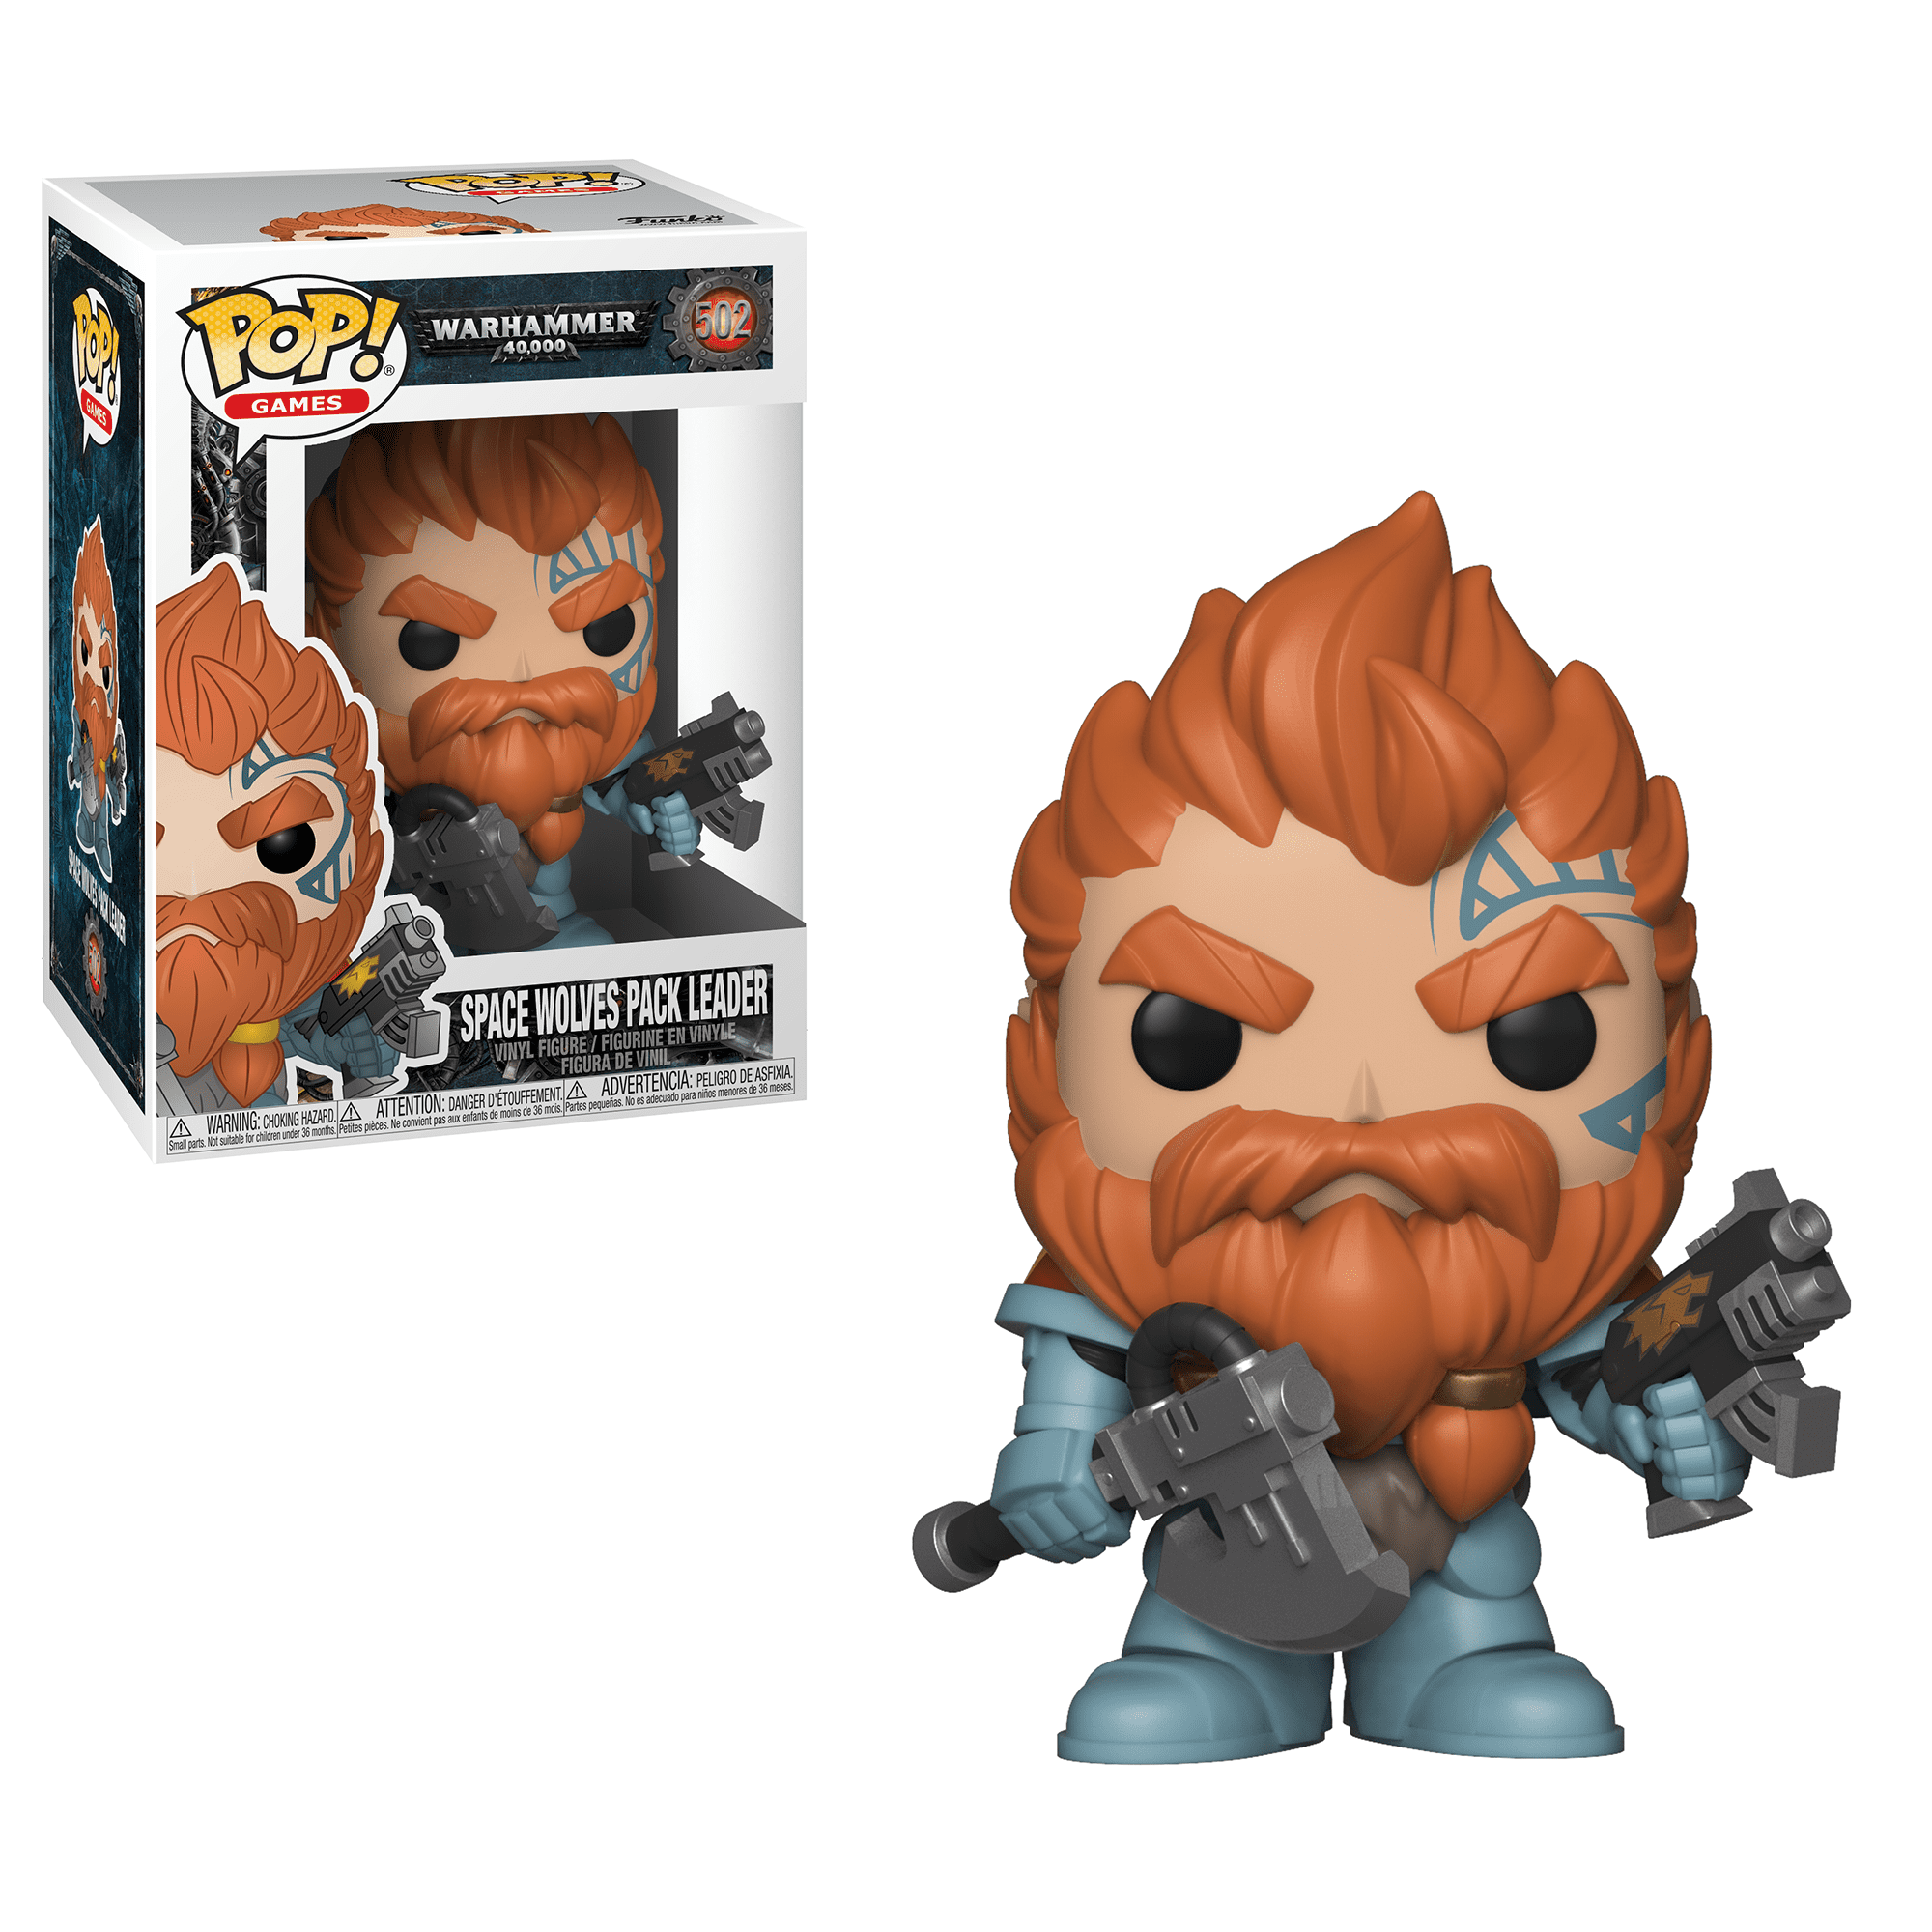 Funko POP! Games: Warhammer 40K Space Wolves Pack Leader by Funko